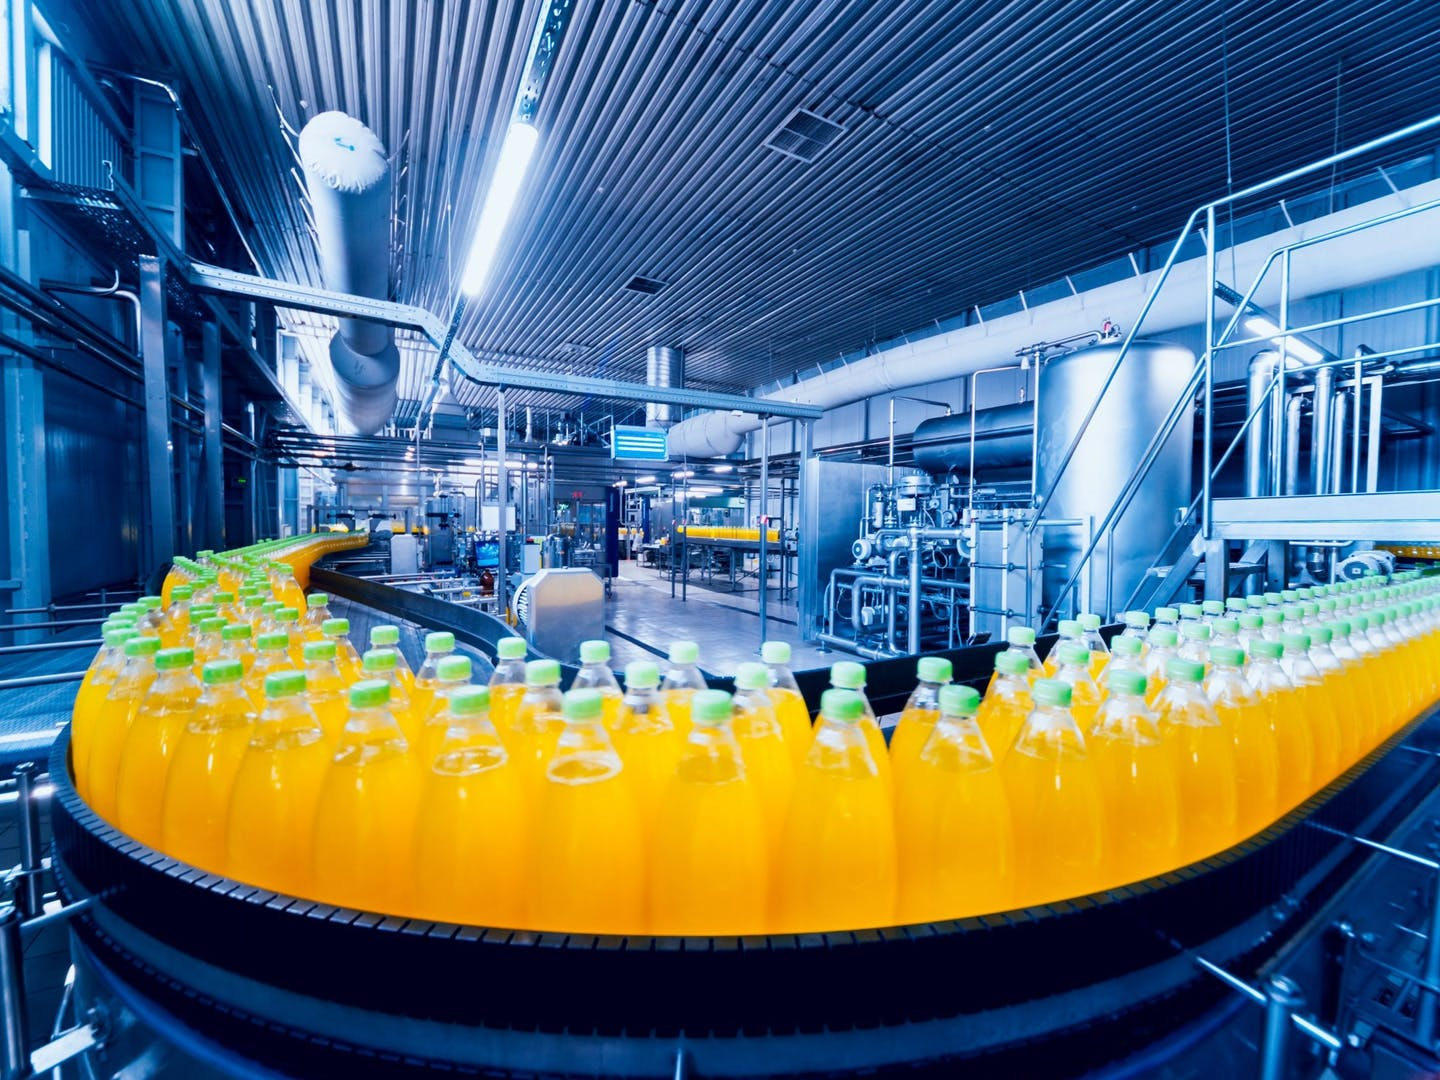 The history of food and beverage manufacturing